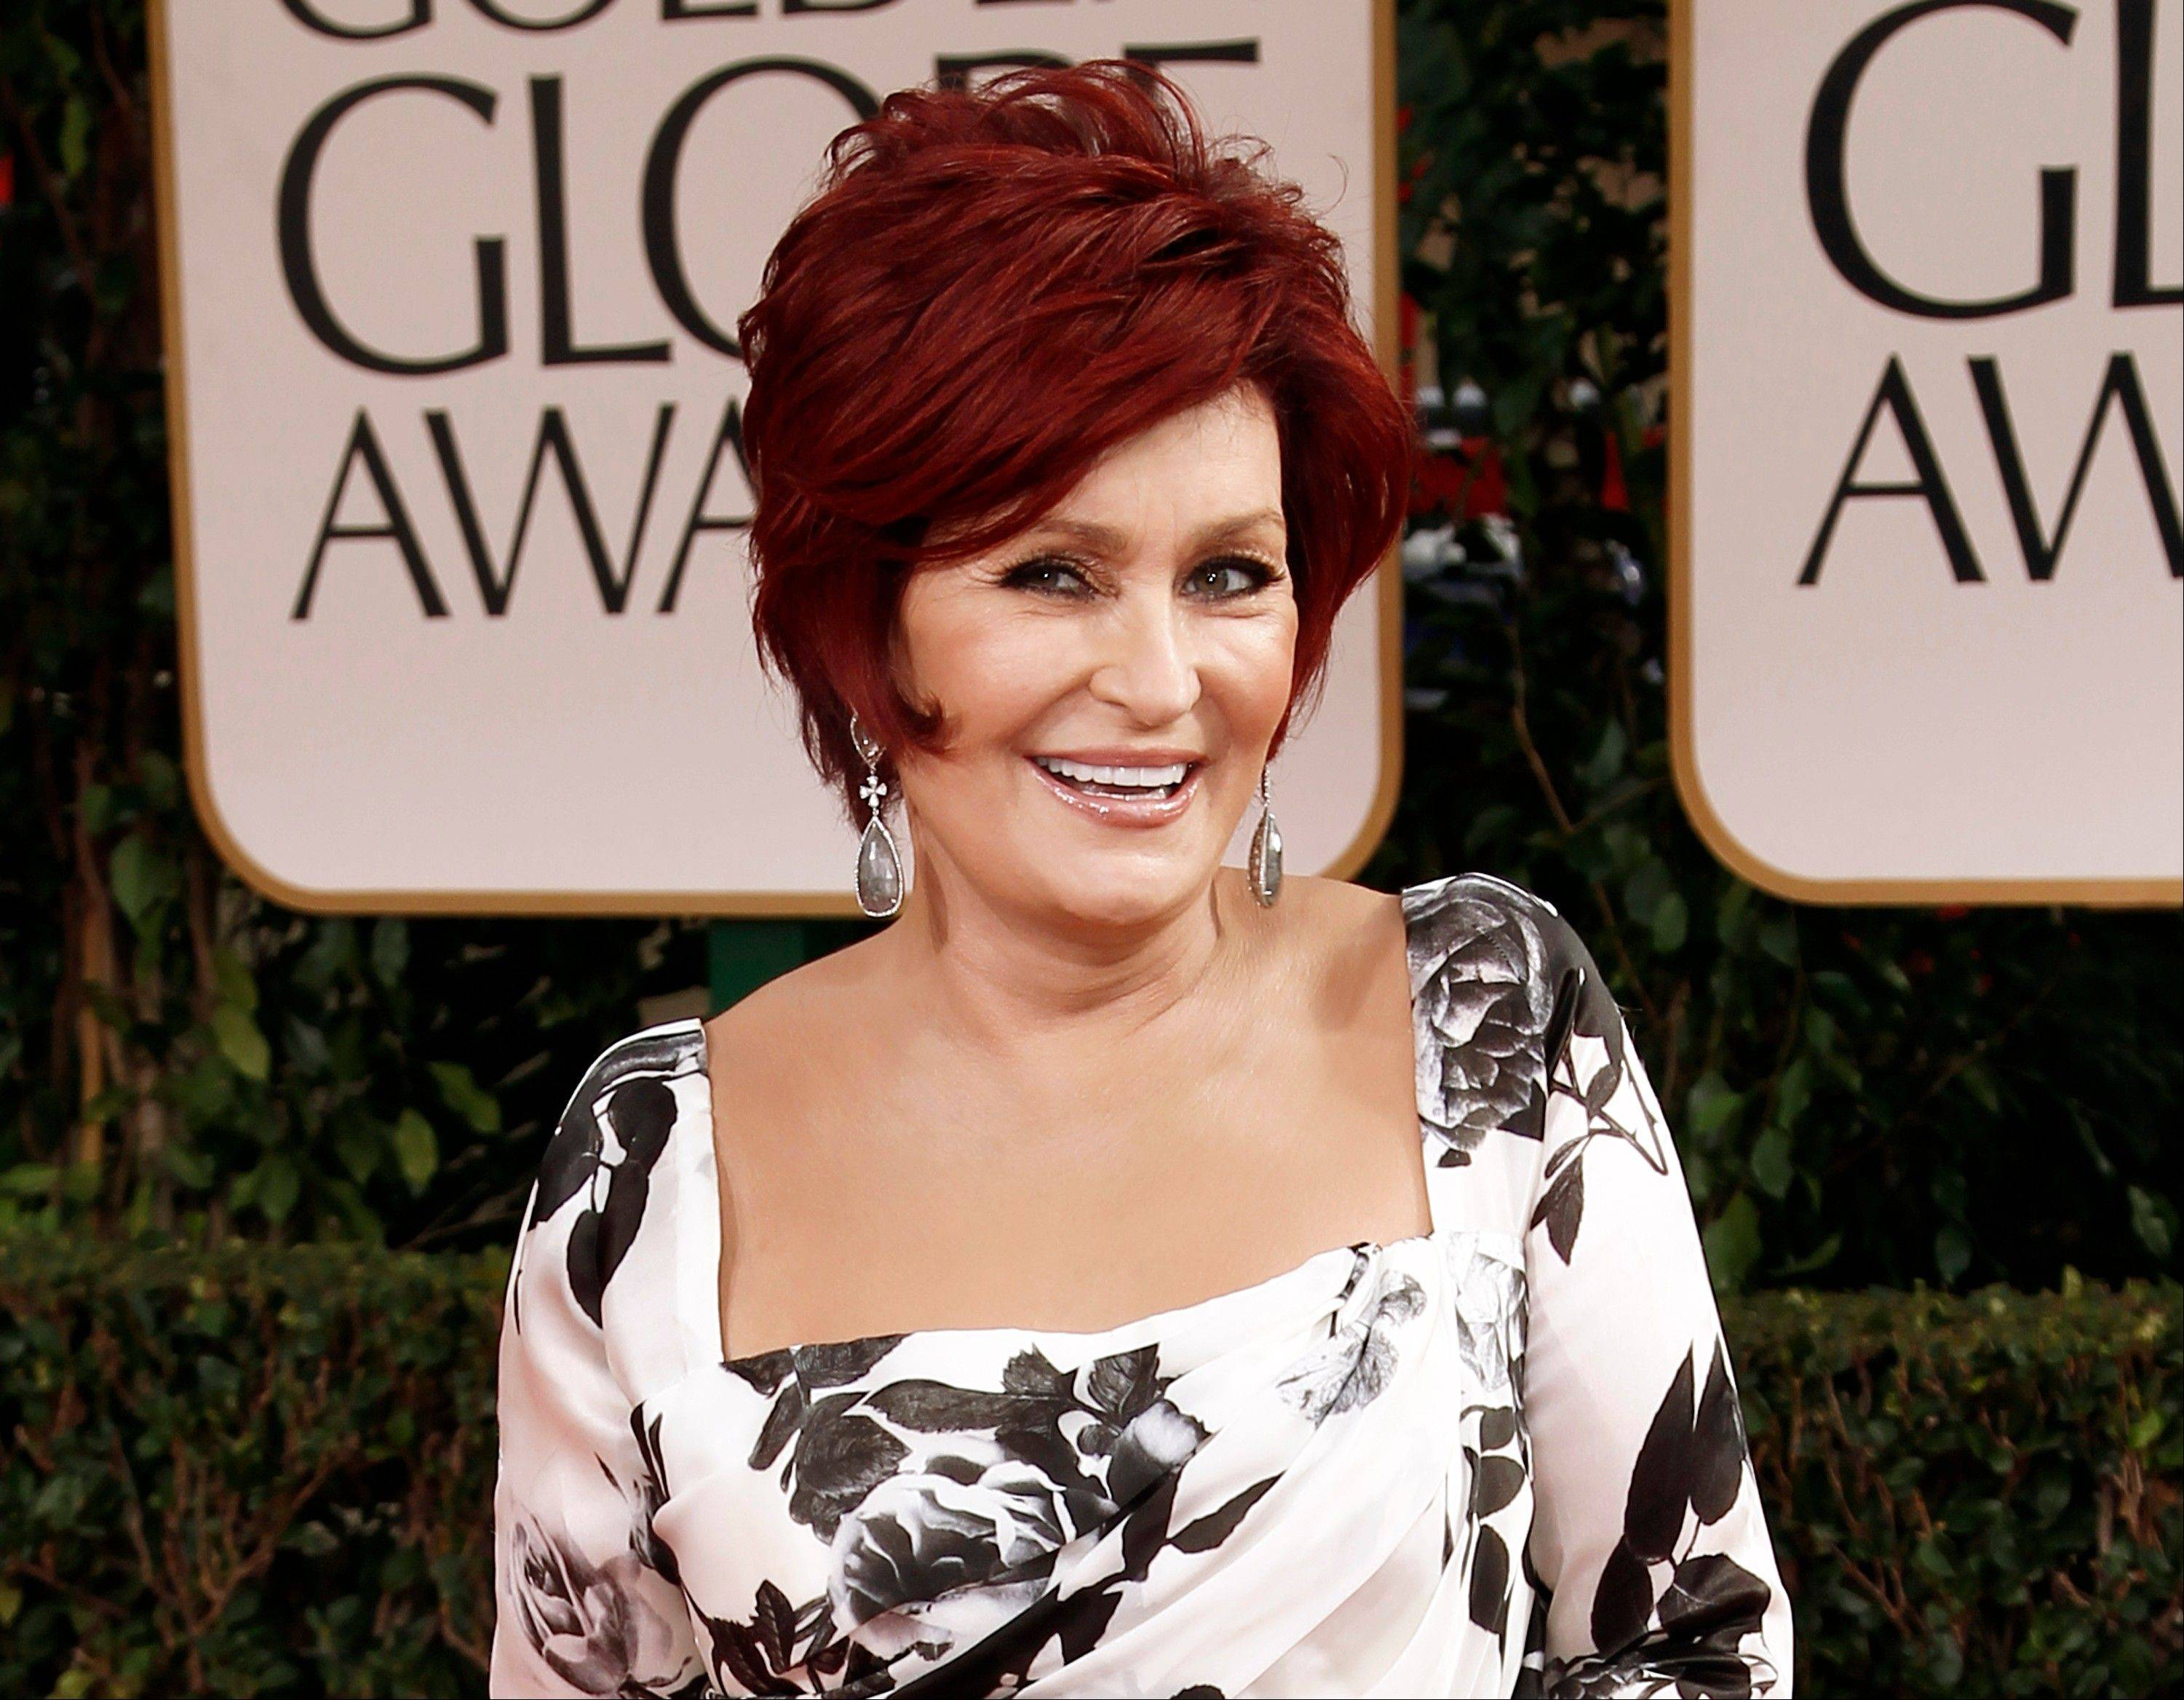 Sharon Osbourne tweeted Tuesday that says she�s ready to say goodbye to �America�s Got Talent.� NBC said Osbourne hasn�t informed the network that she intends to leave the show, which is now airing its seventh season.